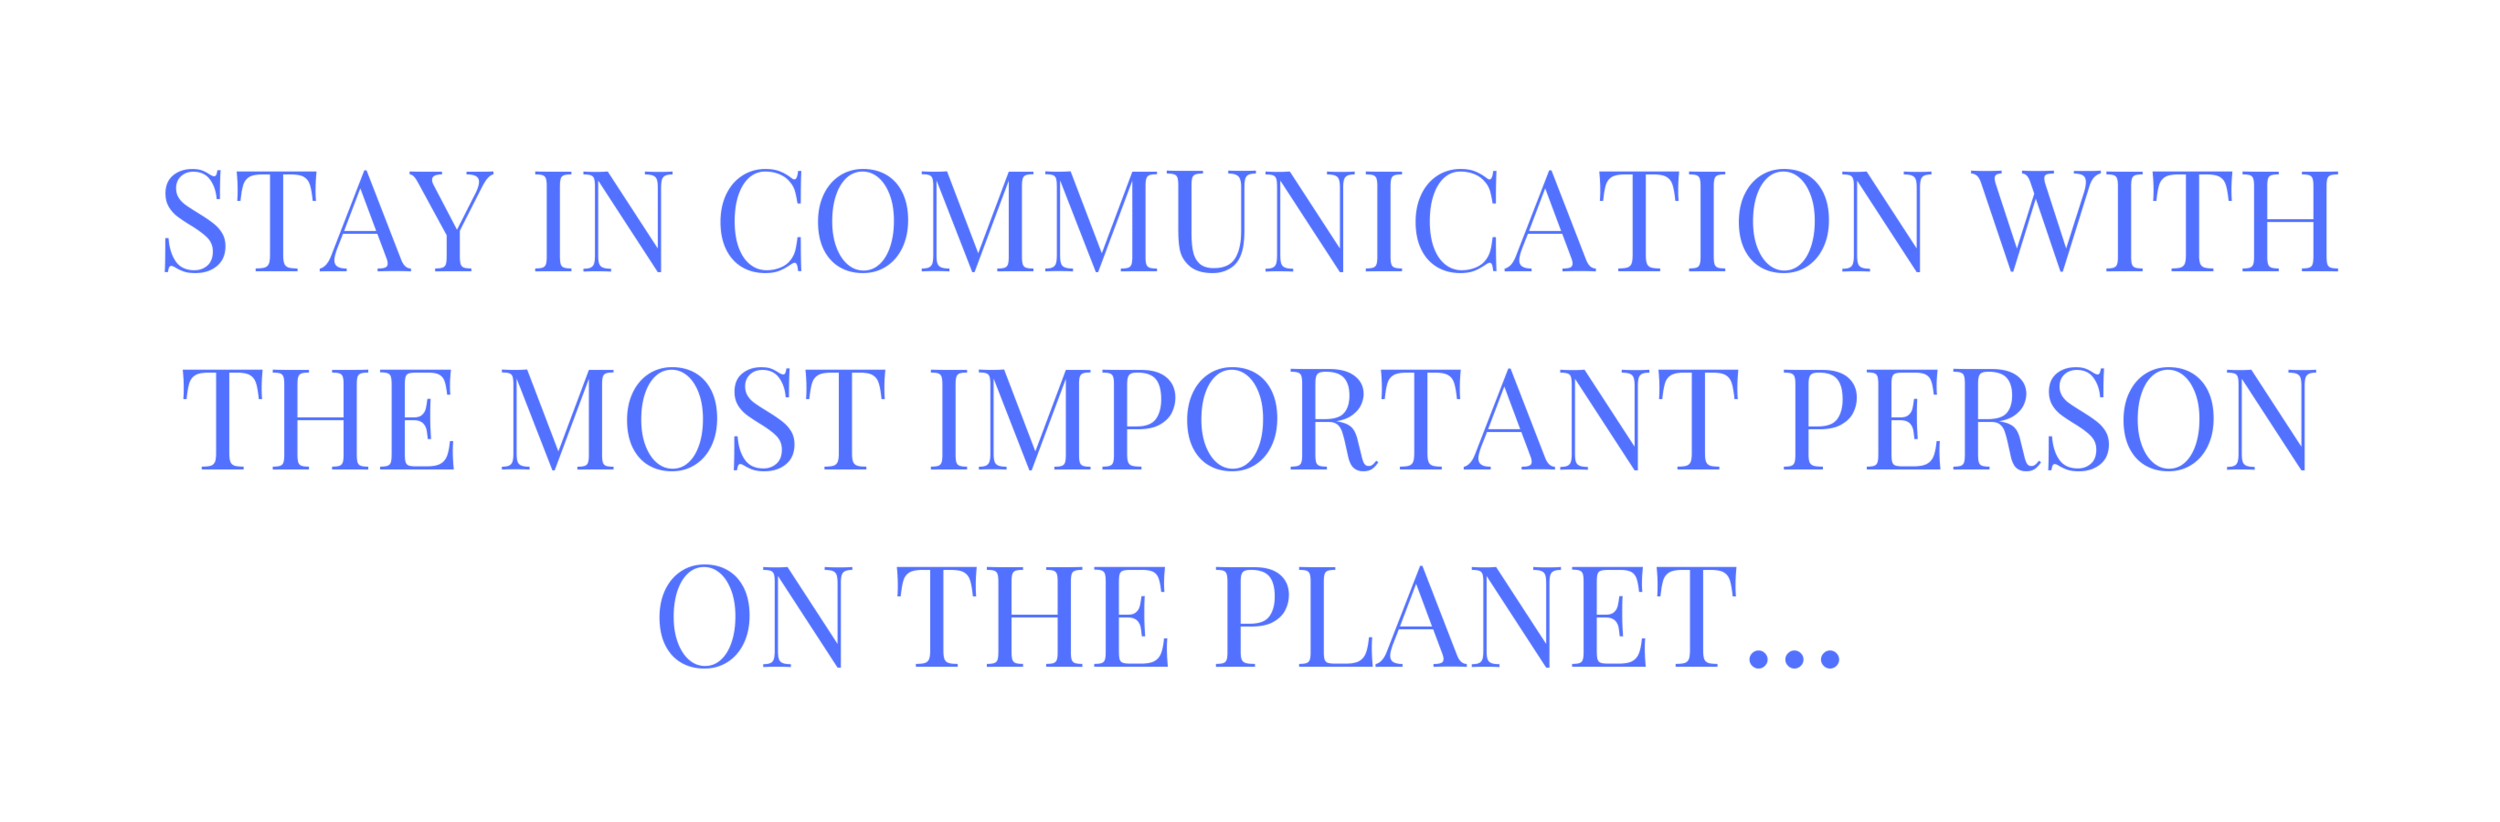 DAK-Services-Inc-Stay-in-Communication-with-the-Most-Important-Person-on-the-Planet-Your-Customer.png